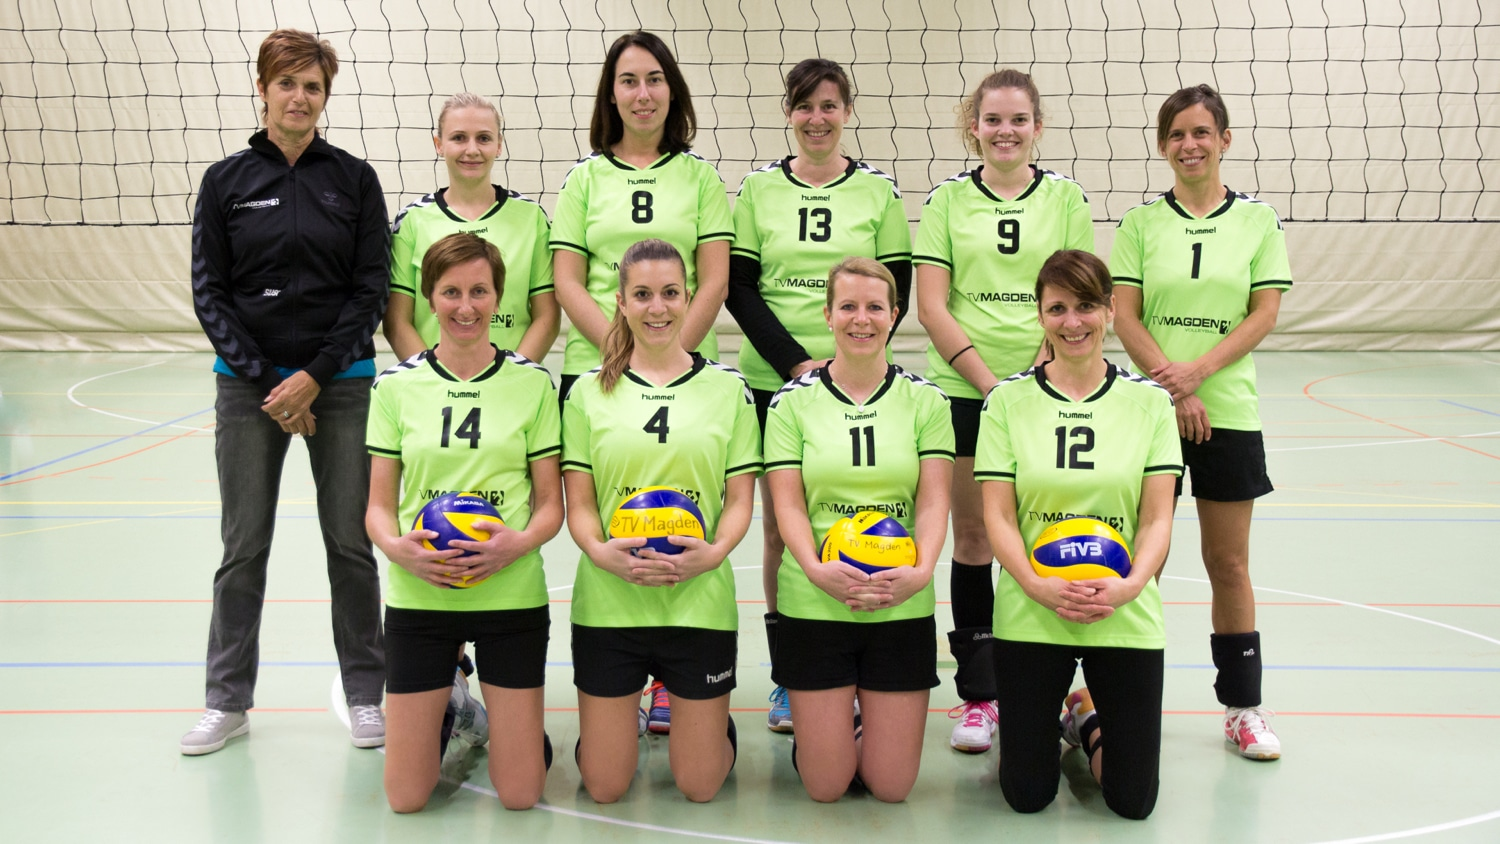 TV Magden Volleyball